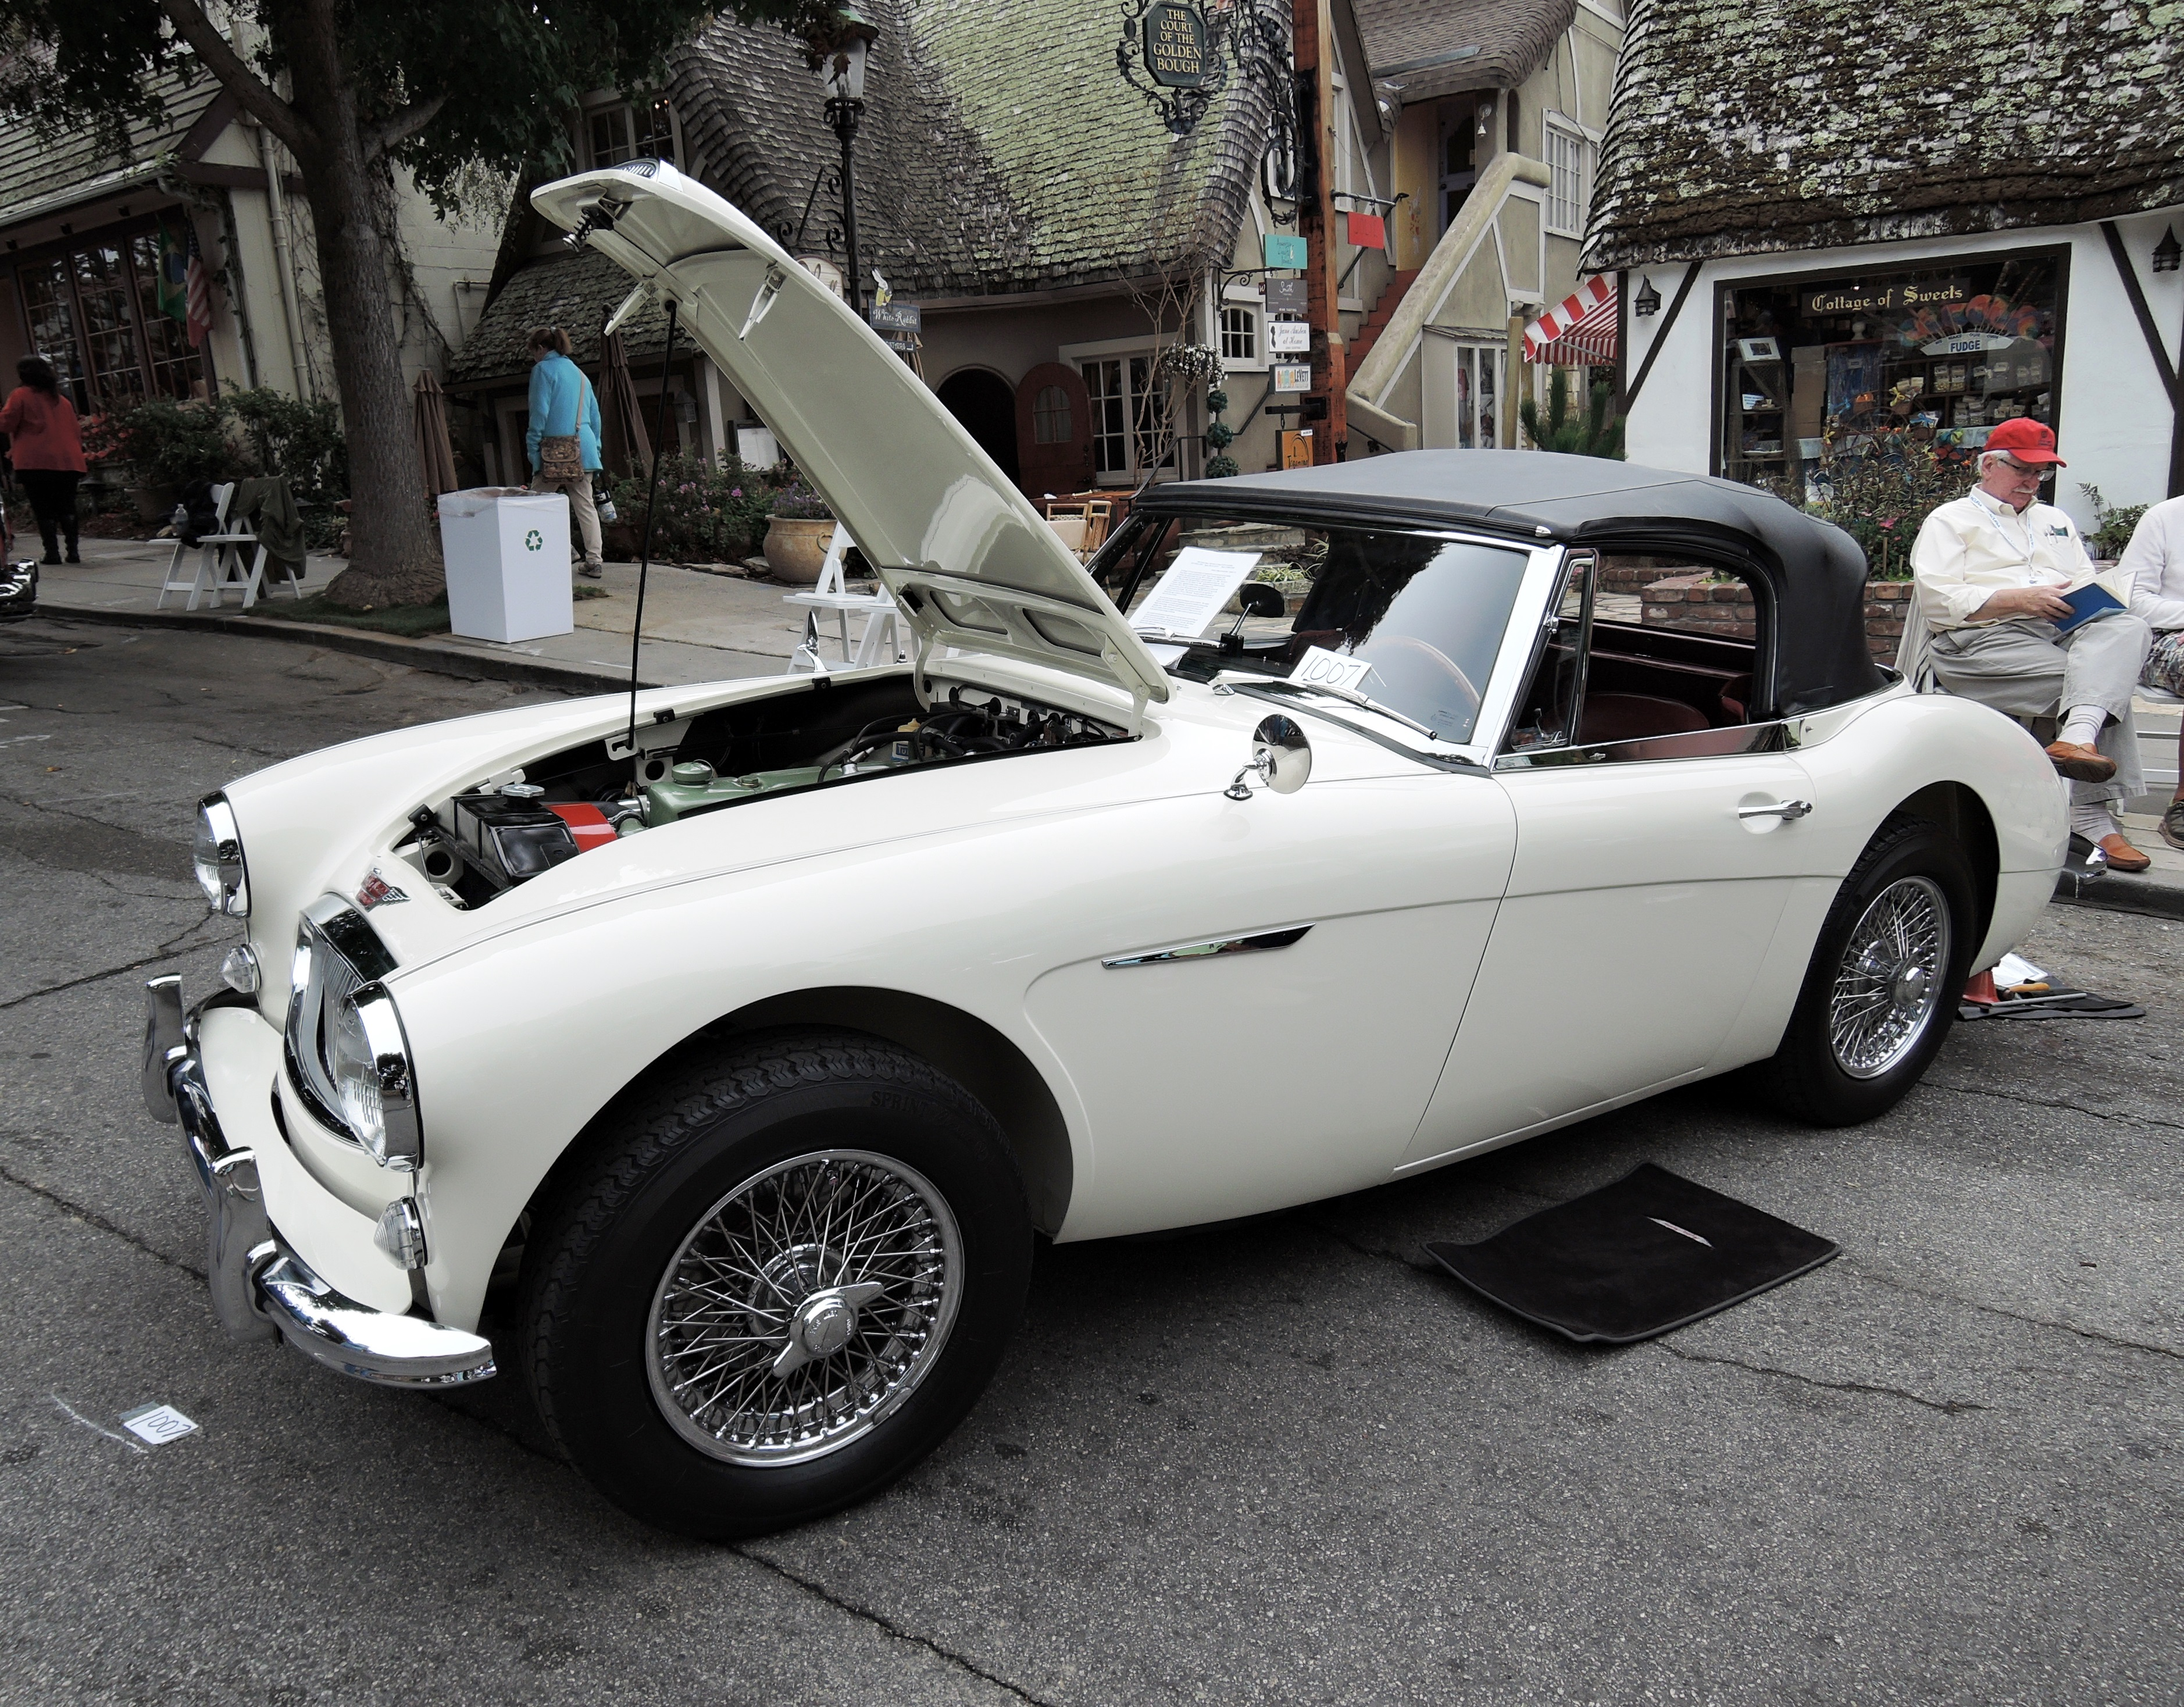 white 1964 Austin Healey 3000 Mark III Phase II BJ8 Convertibe - Concours on the Ave Carmel